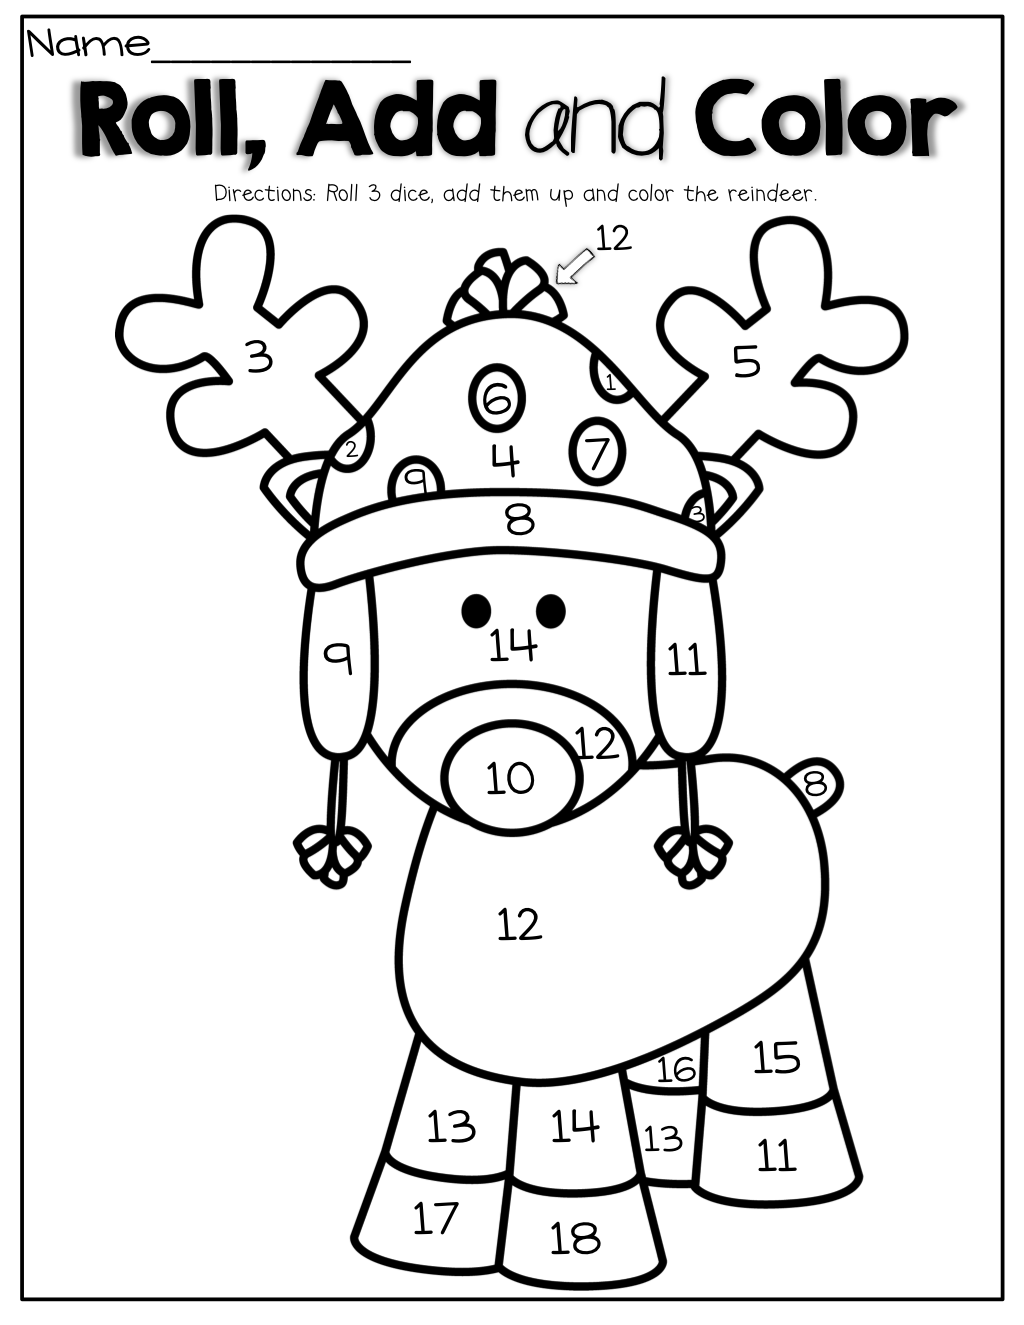 Roll 3 dice, add them up and color the reindeer! What a